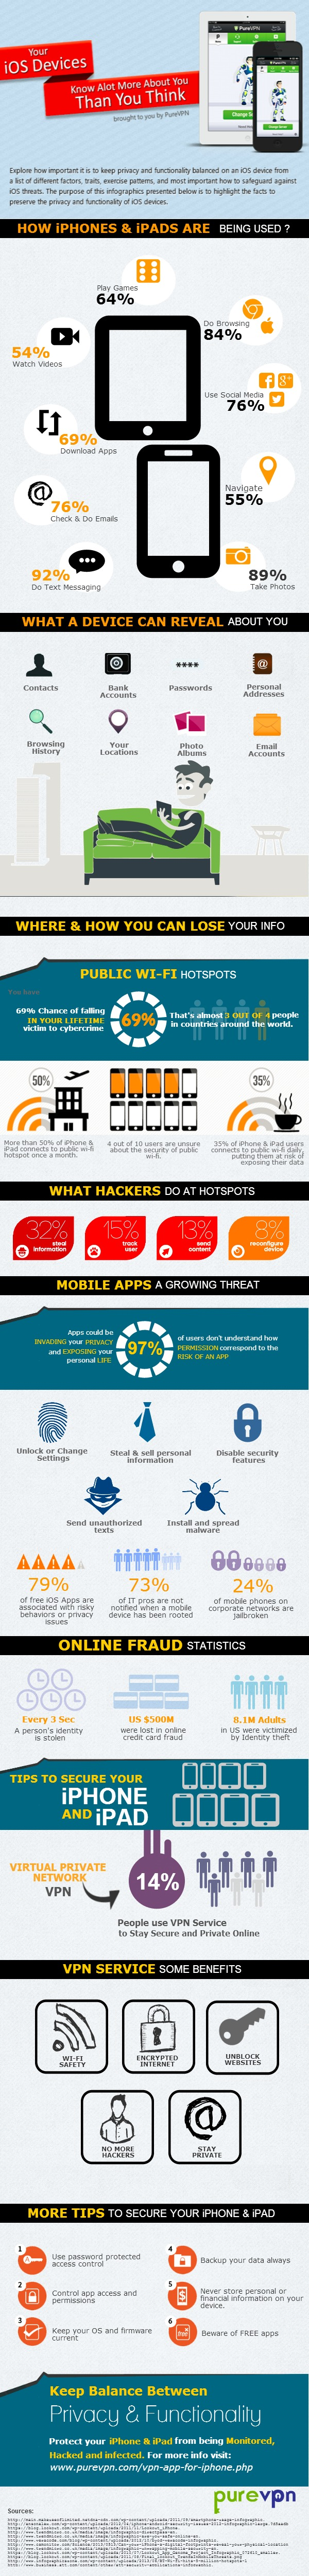 iOS-security-infographic